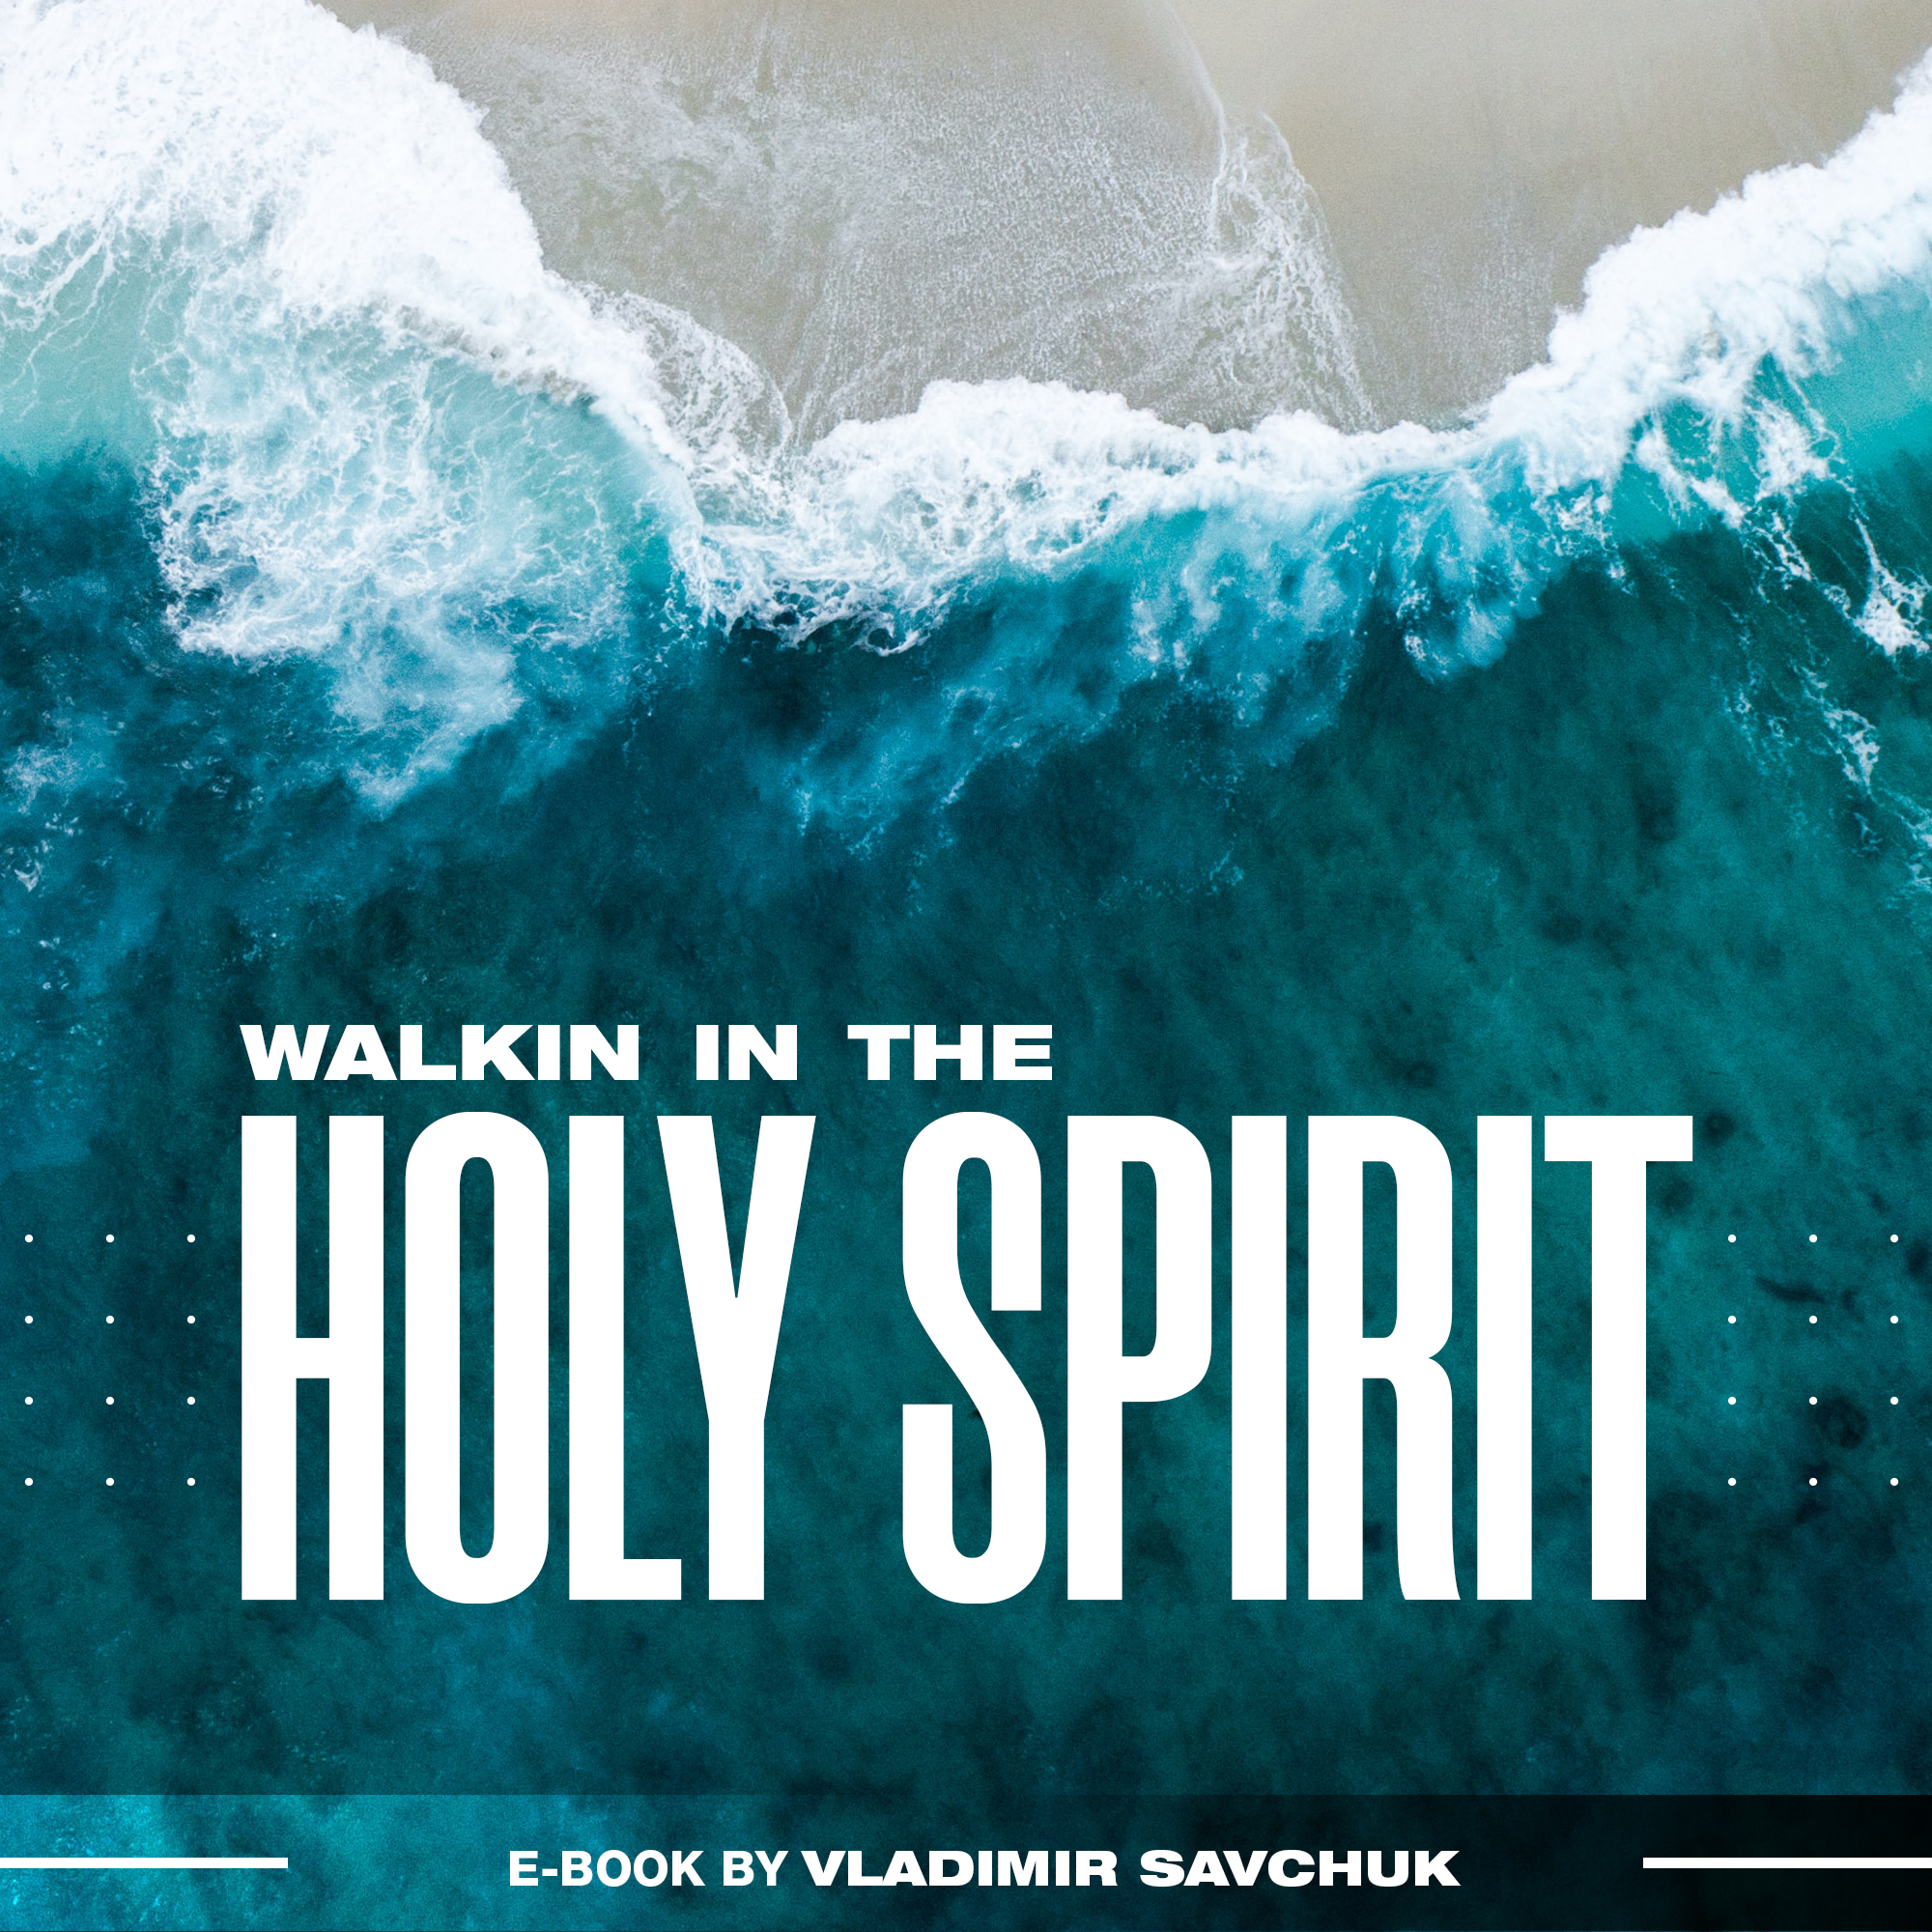 https://vladimirsavchuk.com/resources/walking-in-the-holy-spirit/